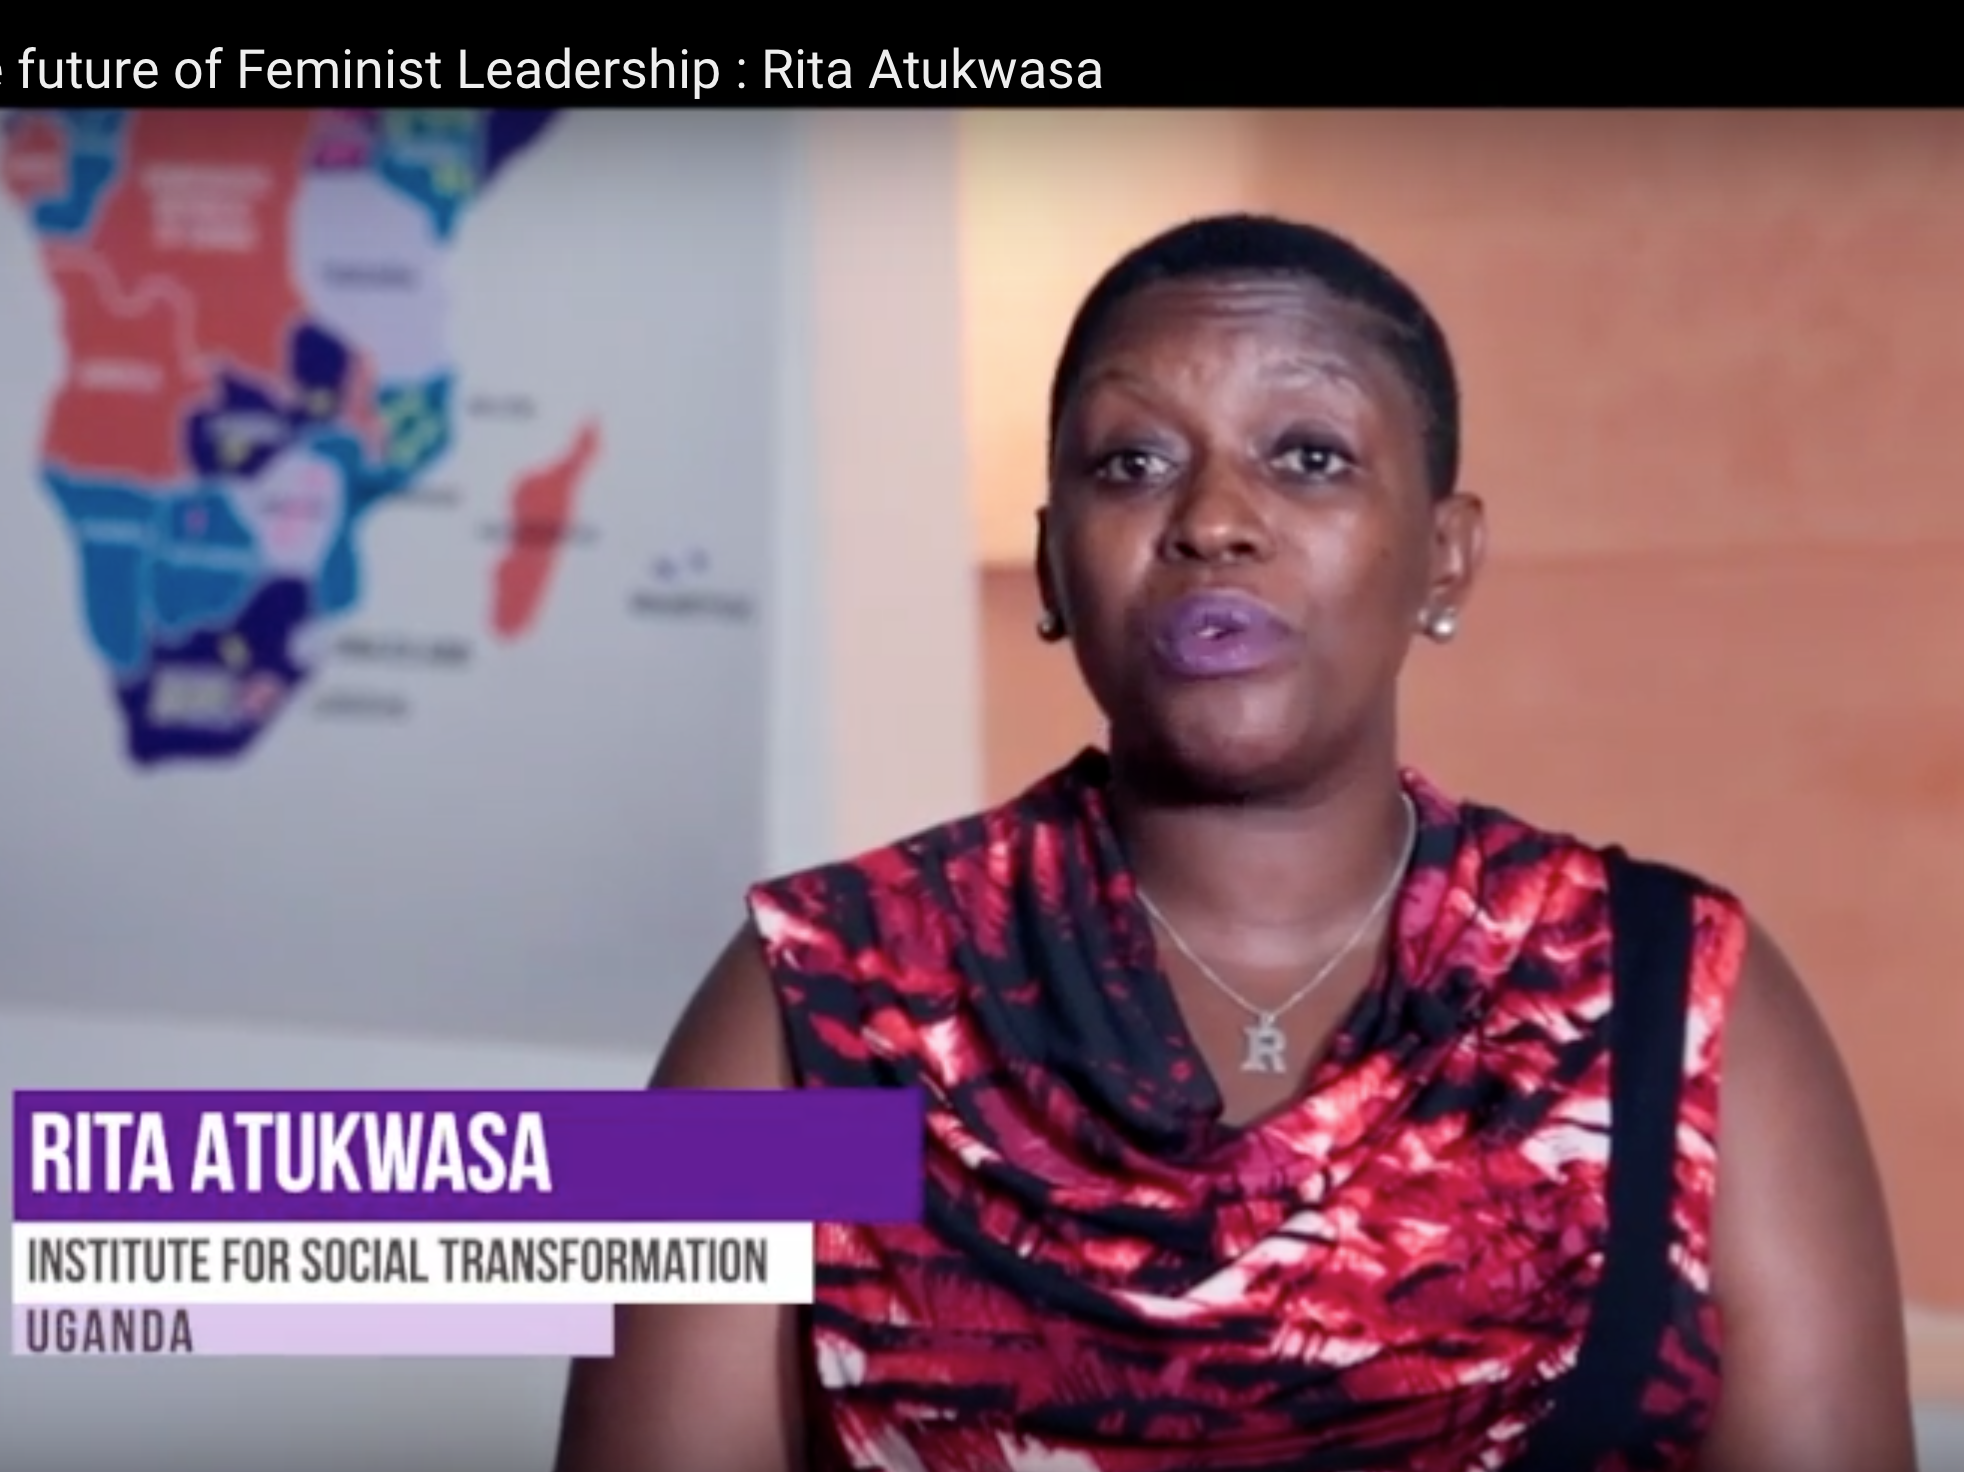 Meet the future of Feminist Leadership : A video interview with Rita Atukwasa